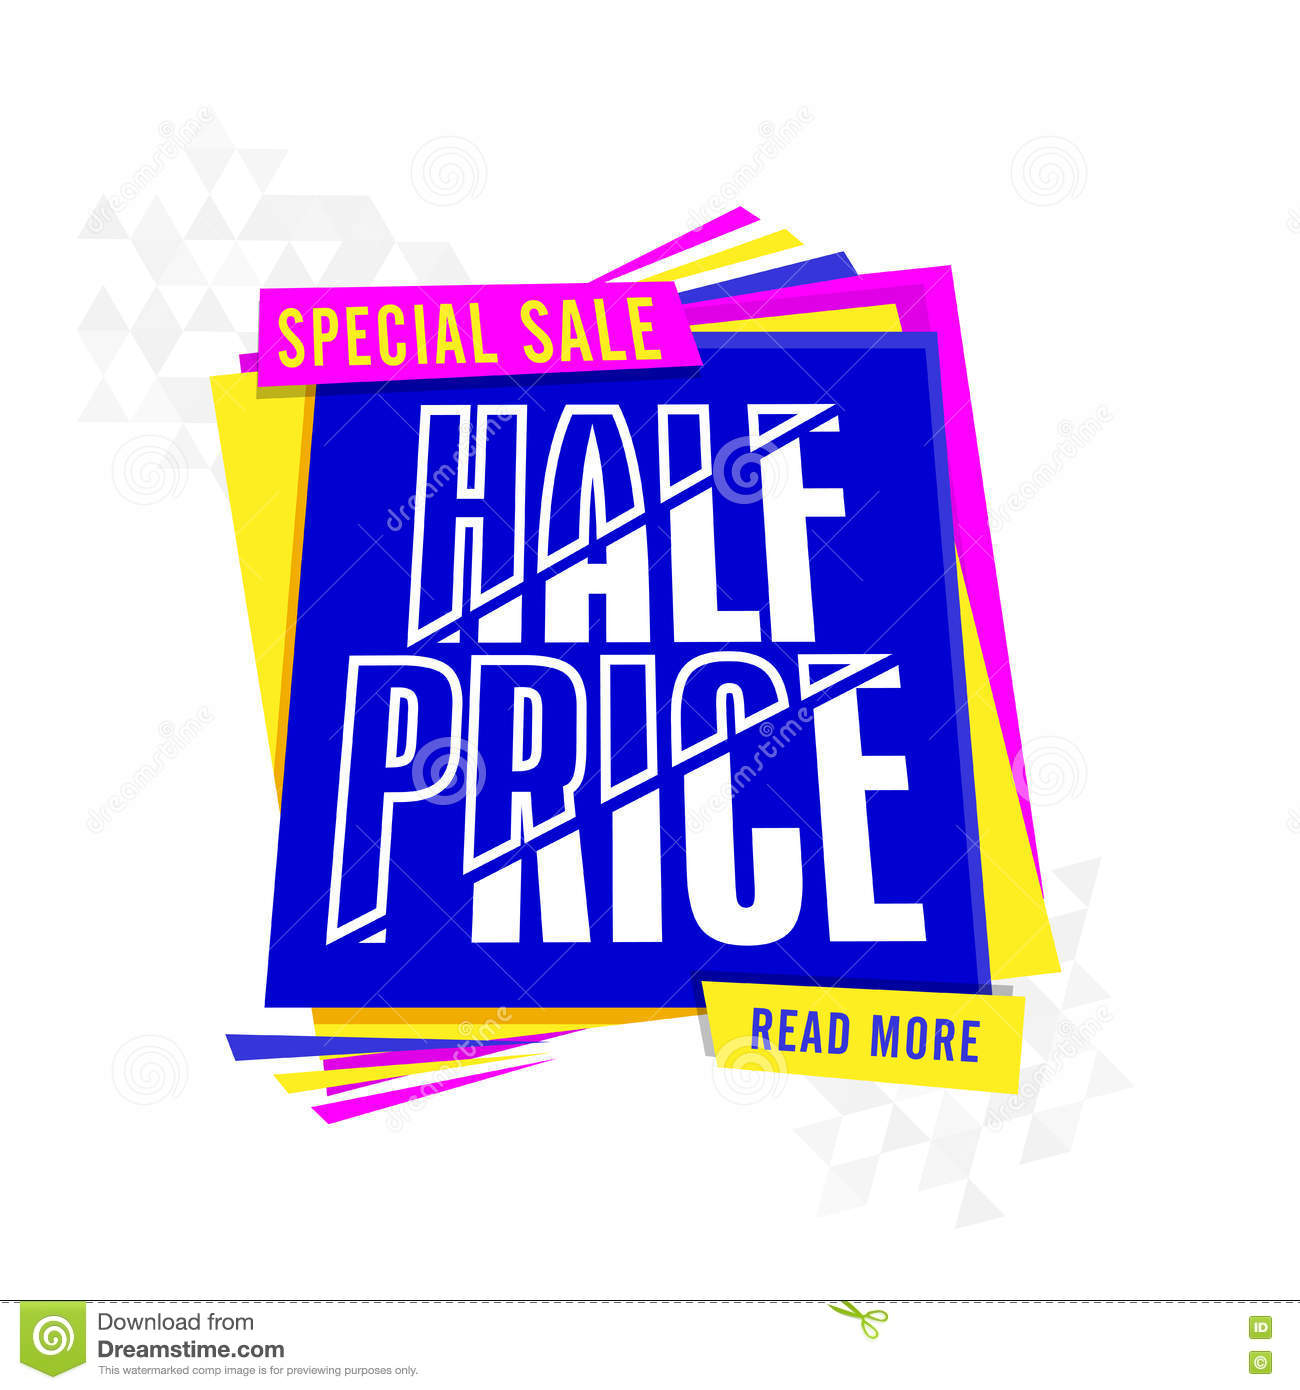 Price for a poster design - Banner Flyer Half Poster Price